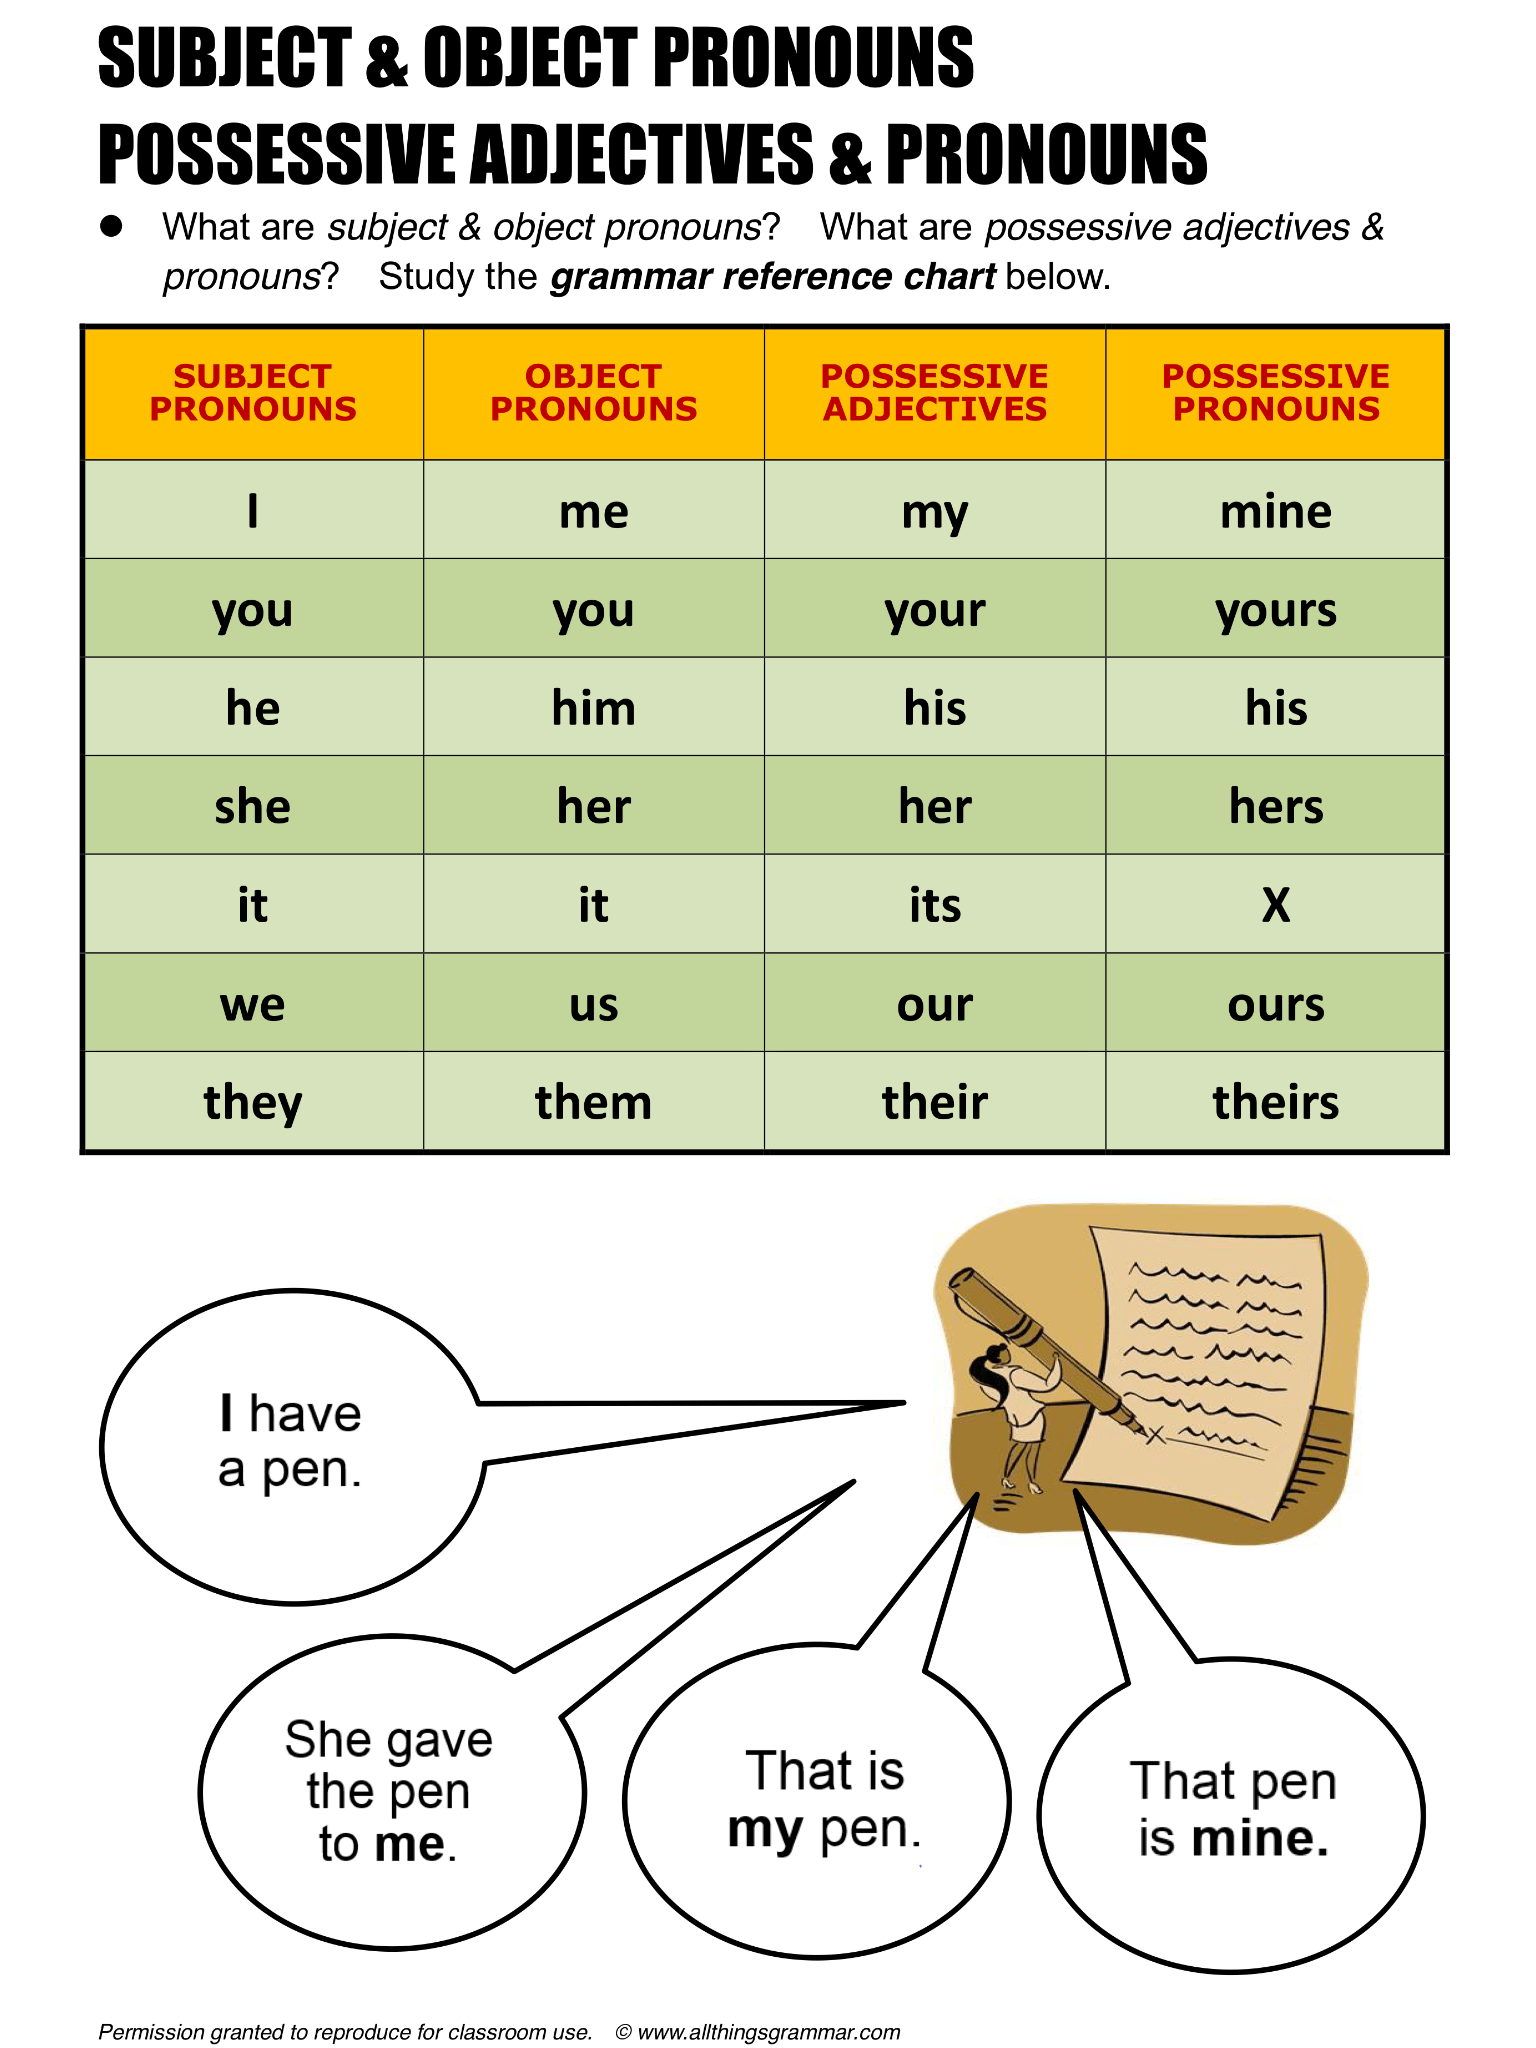 English Grammar Subject Amp Object Pronouns Possessive Adjectives Amp Pronouns